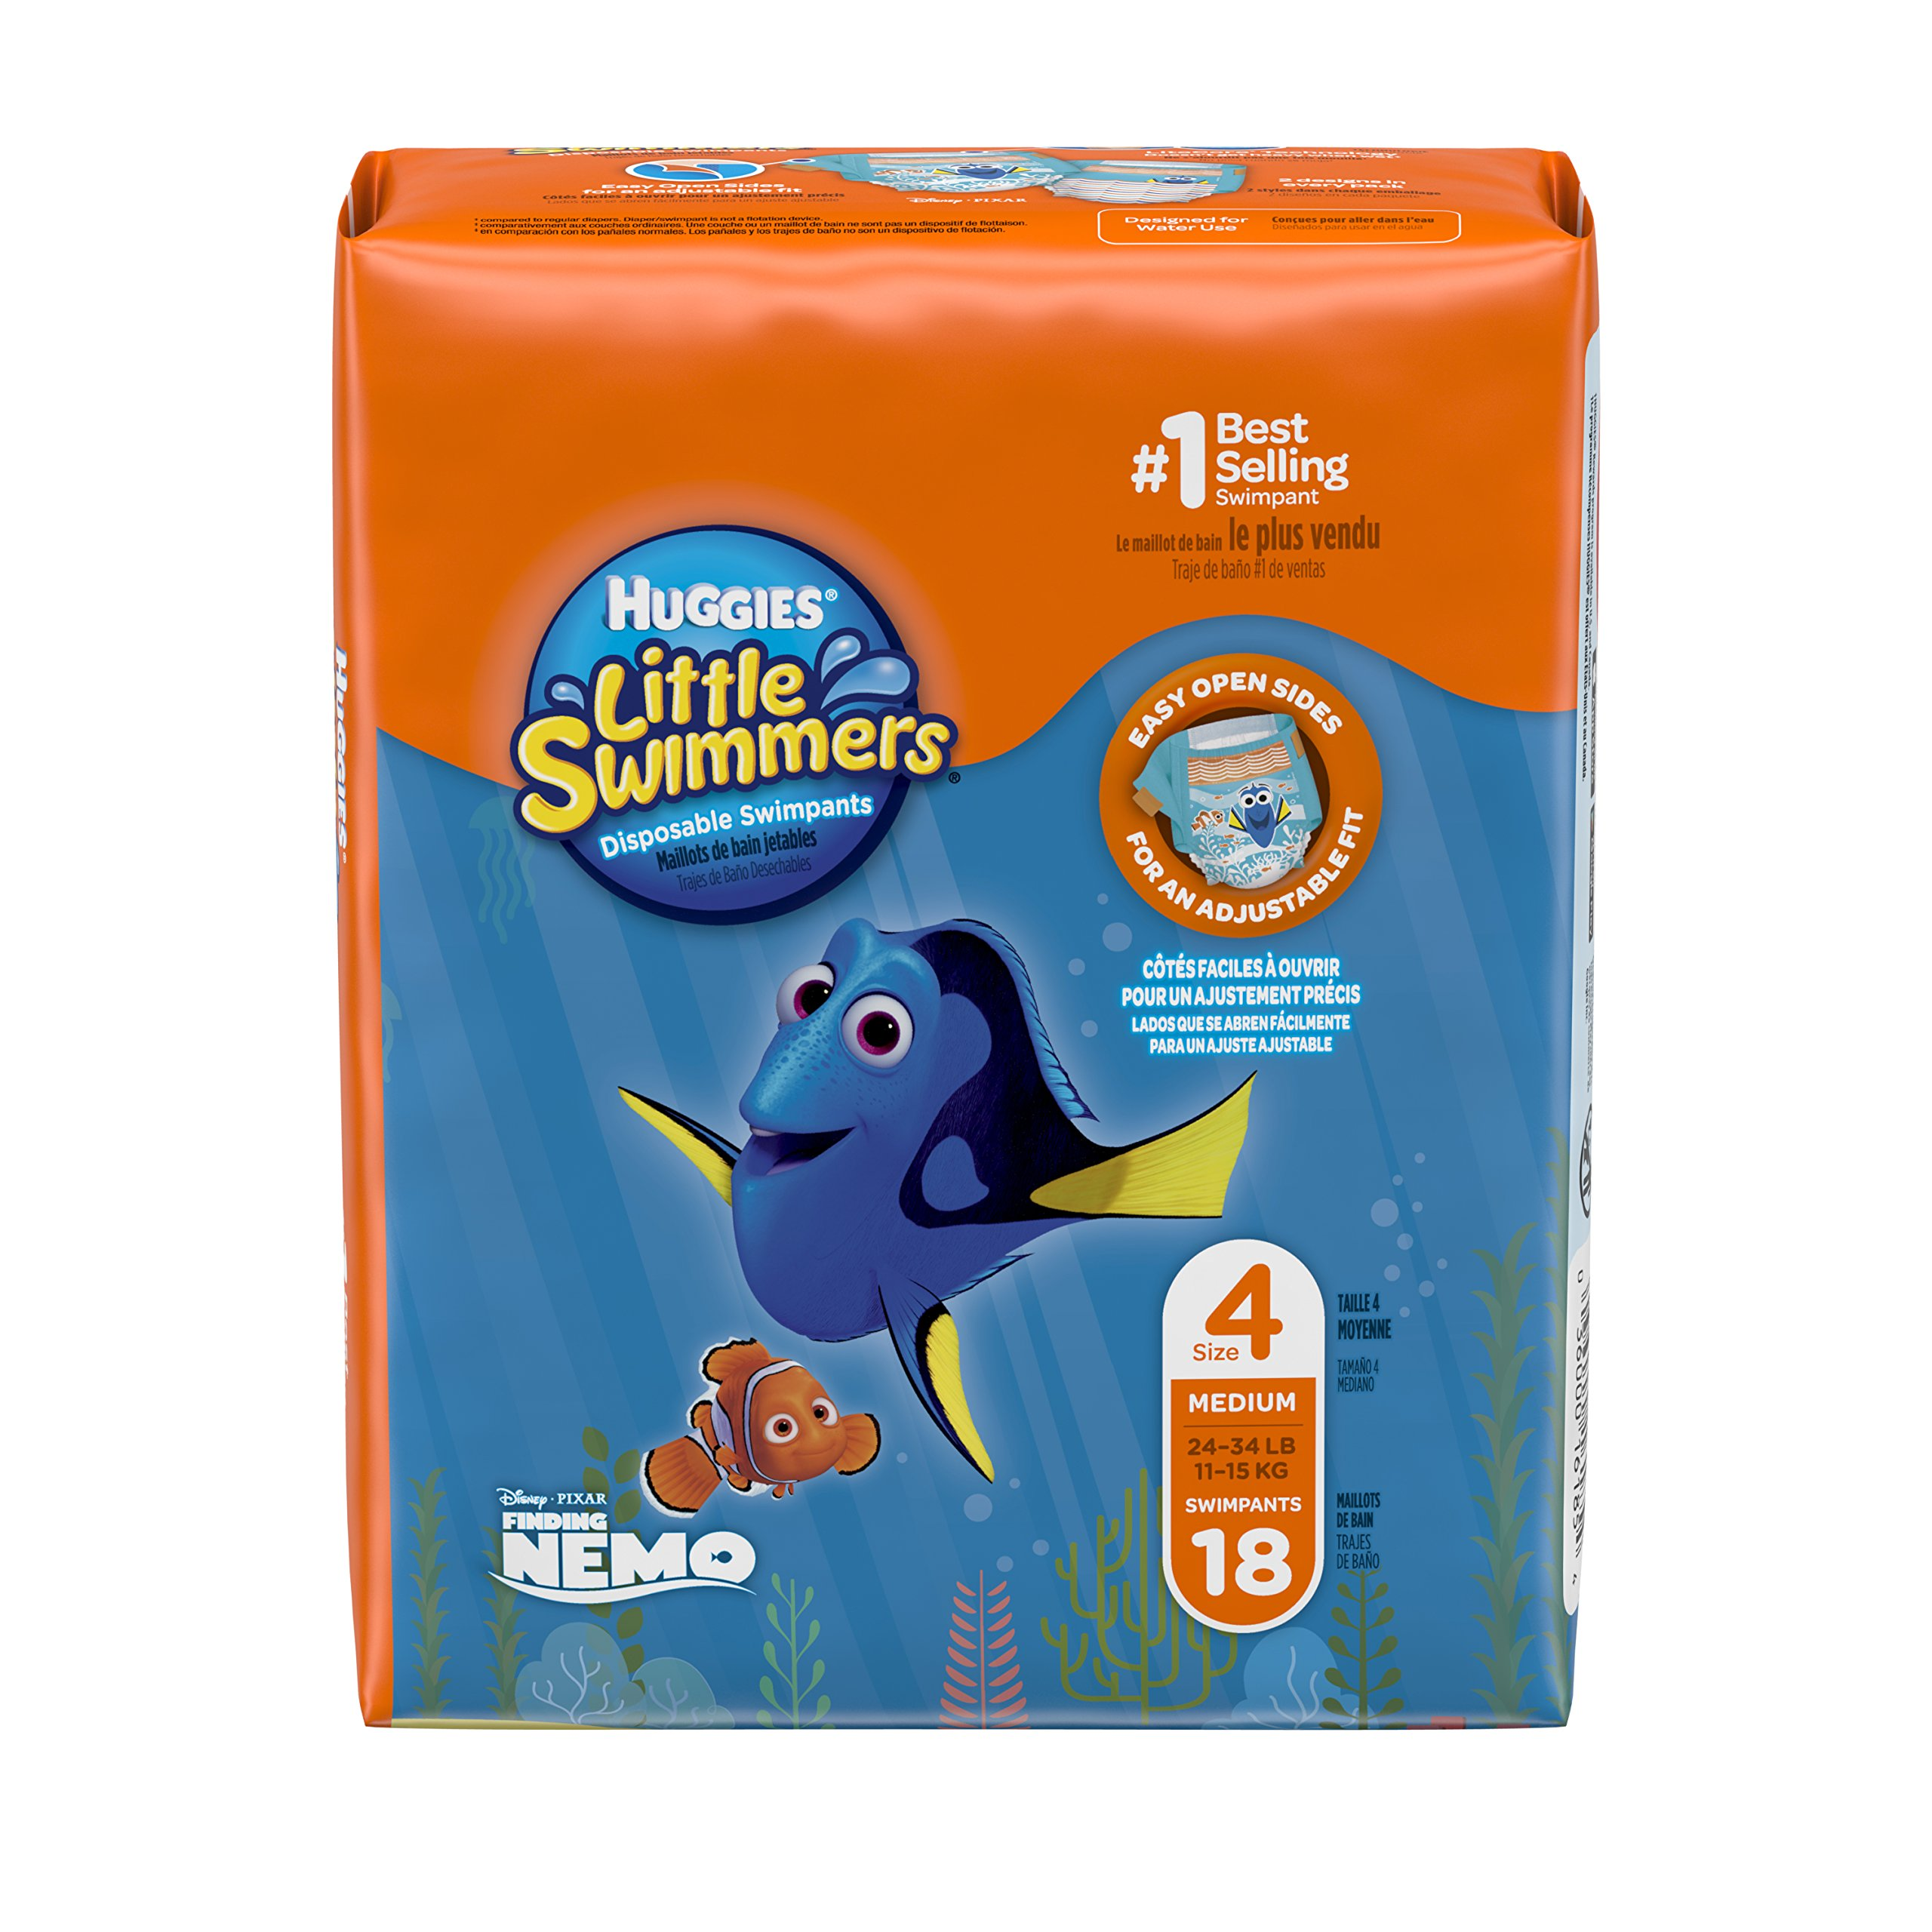 Huggies Little Swimmers Disposable Swimpants, Swim Diaper, Size Medium, 18 Ct. (